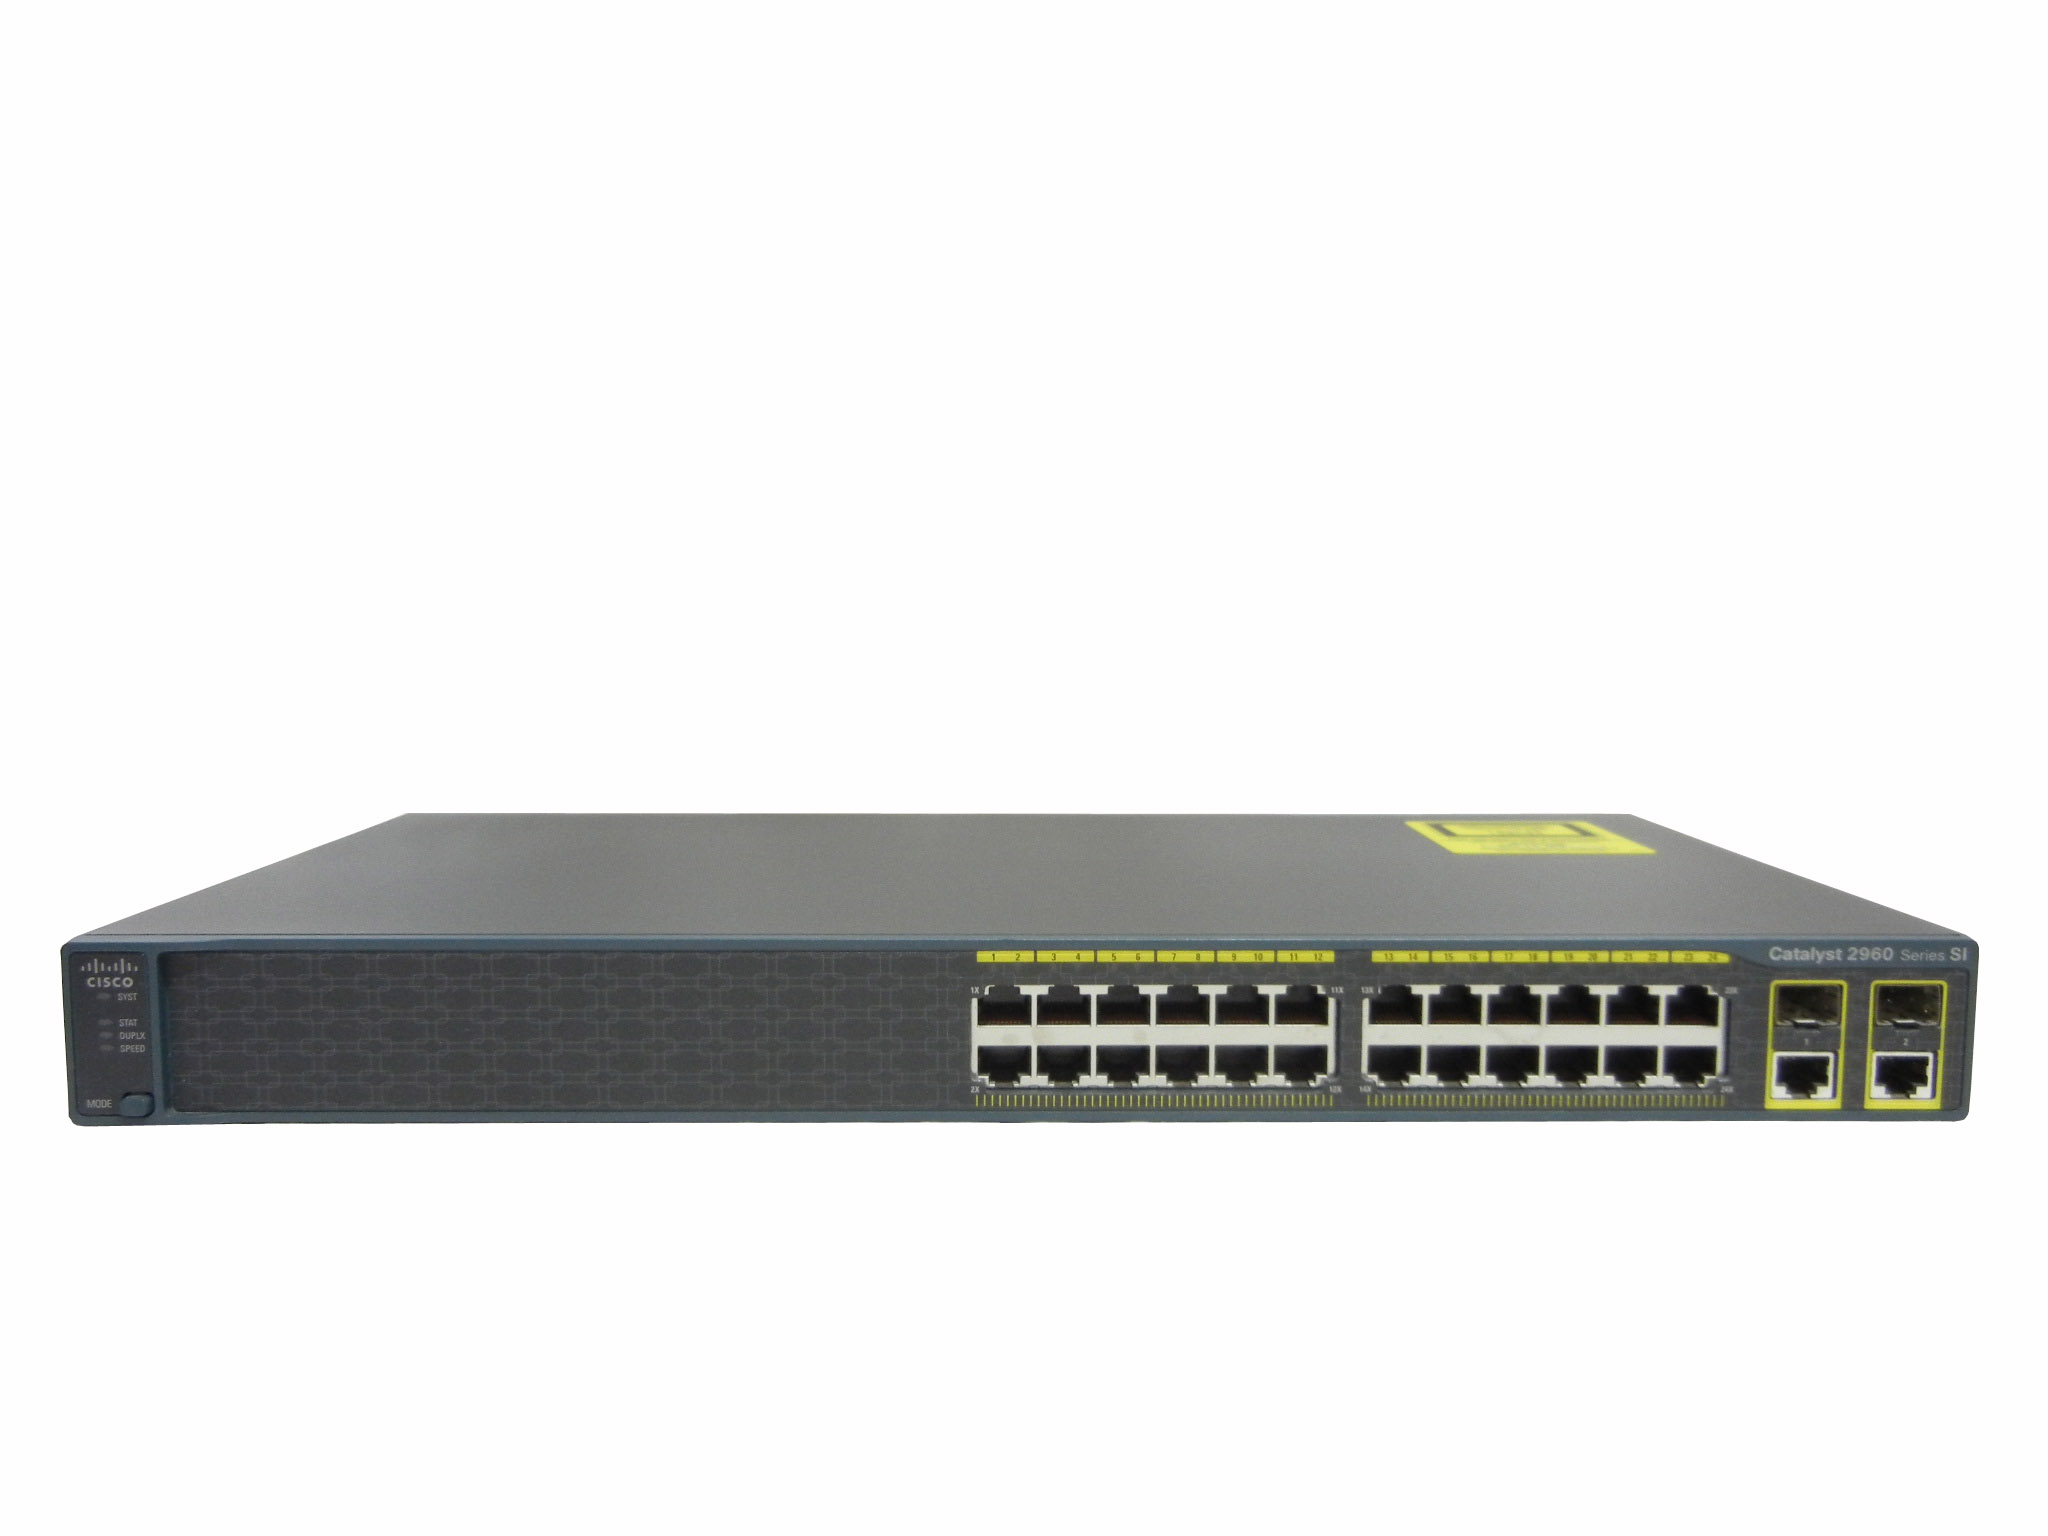 【中古】Cisco Catalyst 2960-24TC-S (WS-C2960-24TC-S)